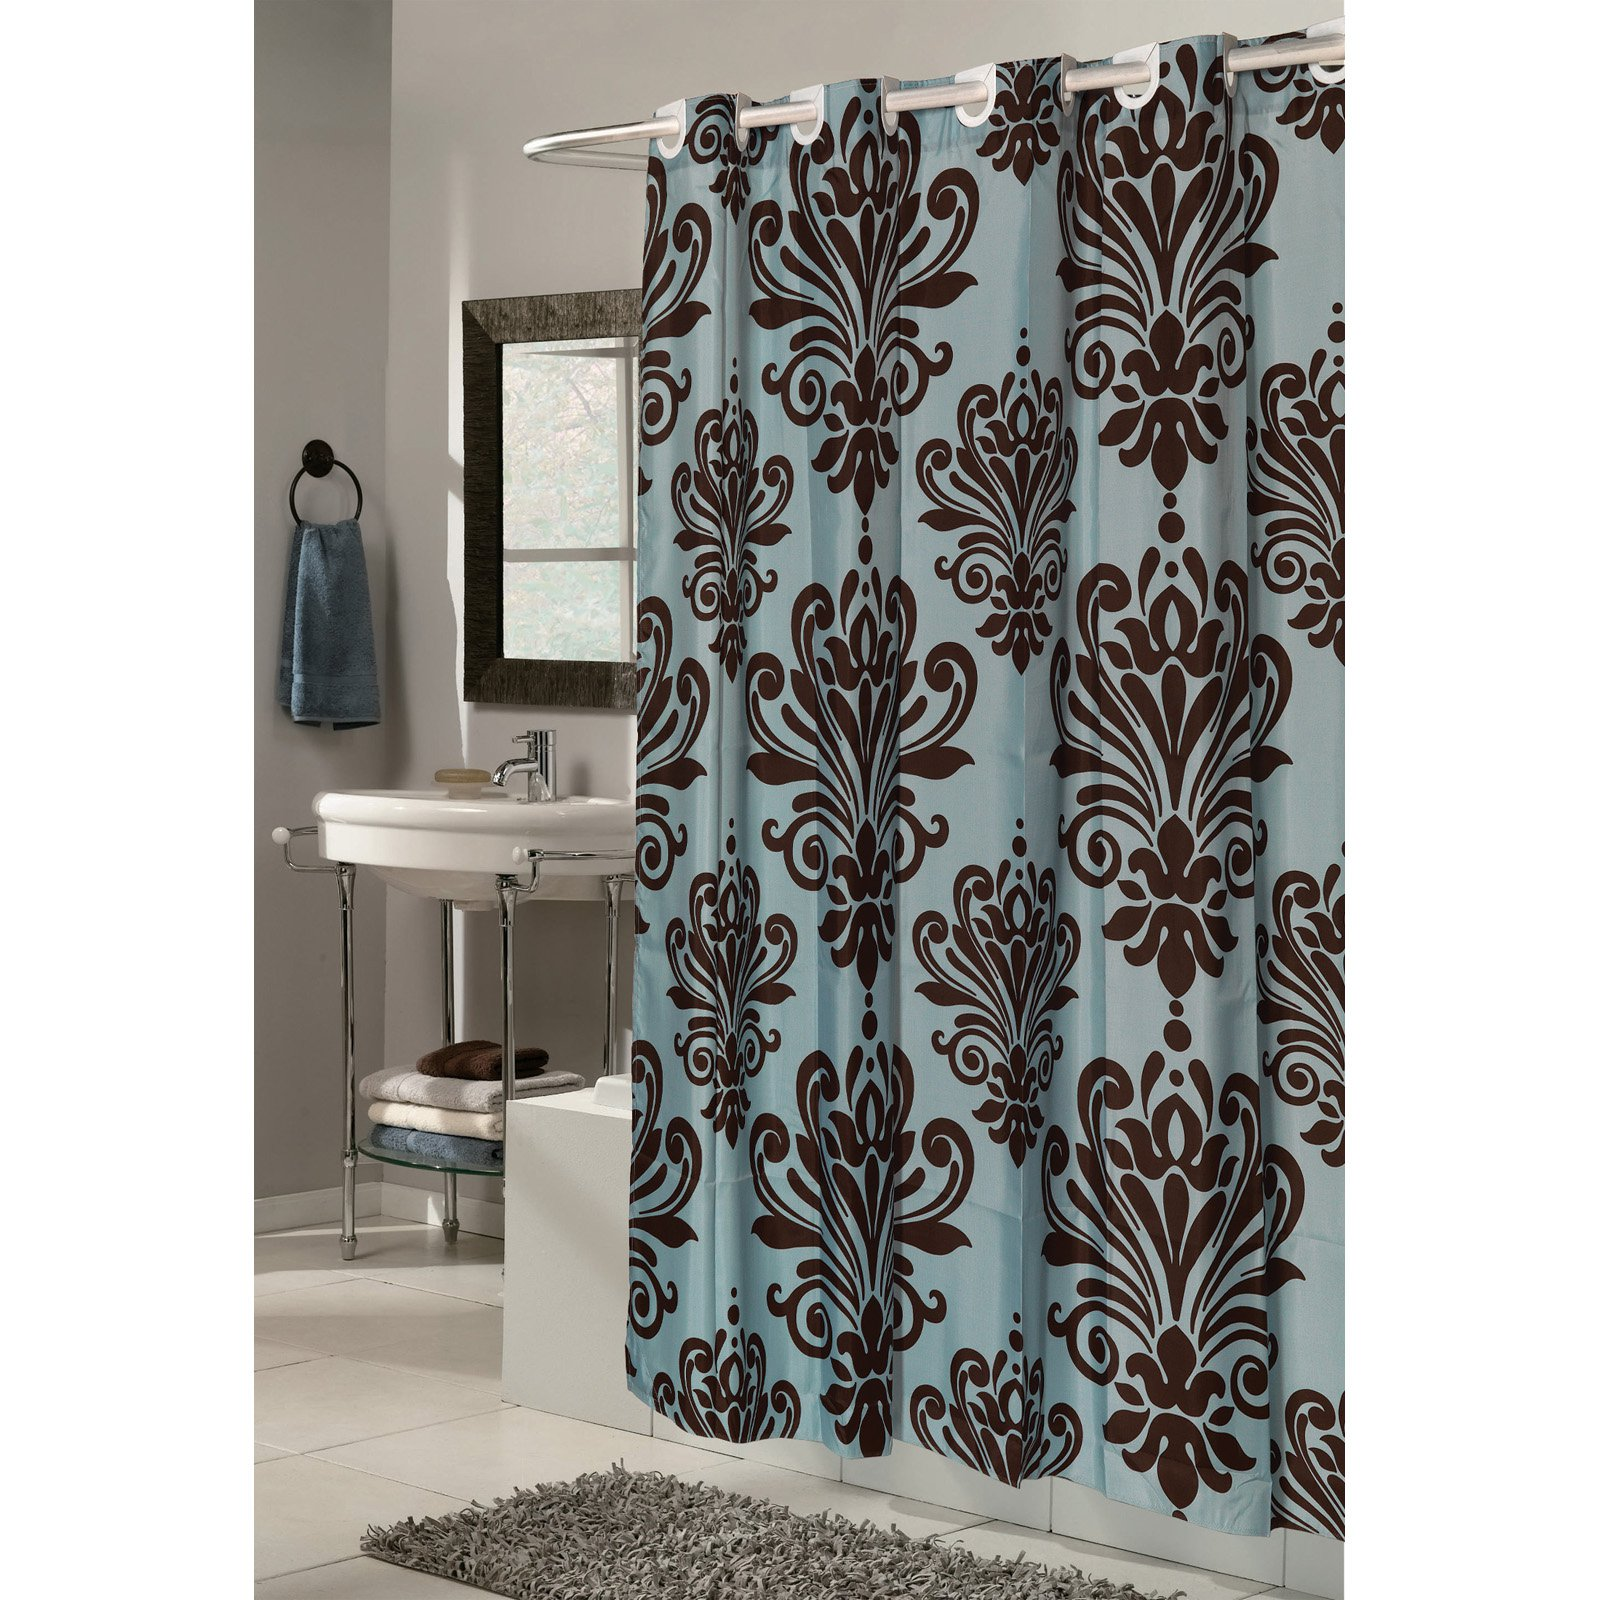 "EZ-ON? ""Beacon Hill"" Polyester Shower Curtain in Chocolate on Spa Blue"